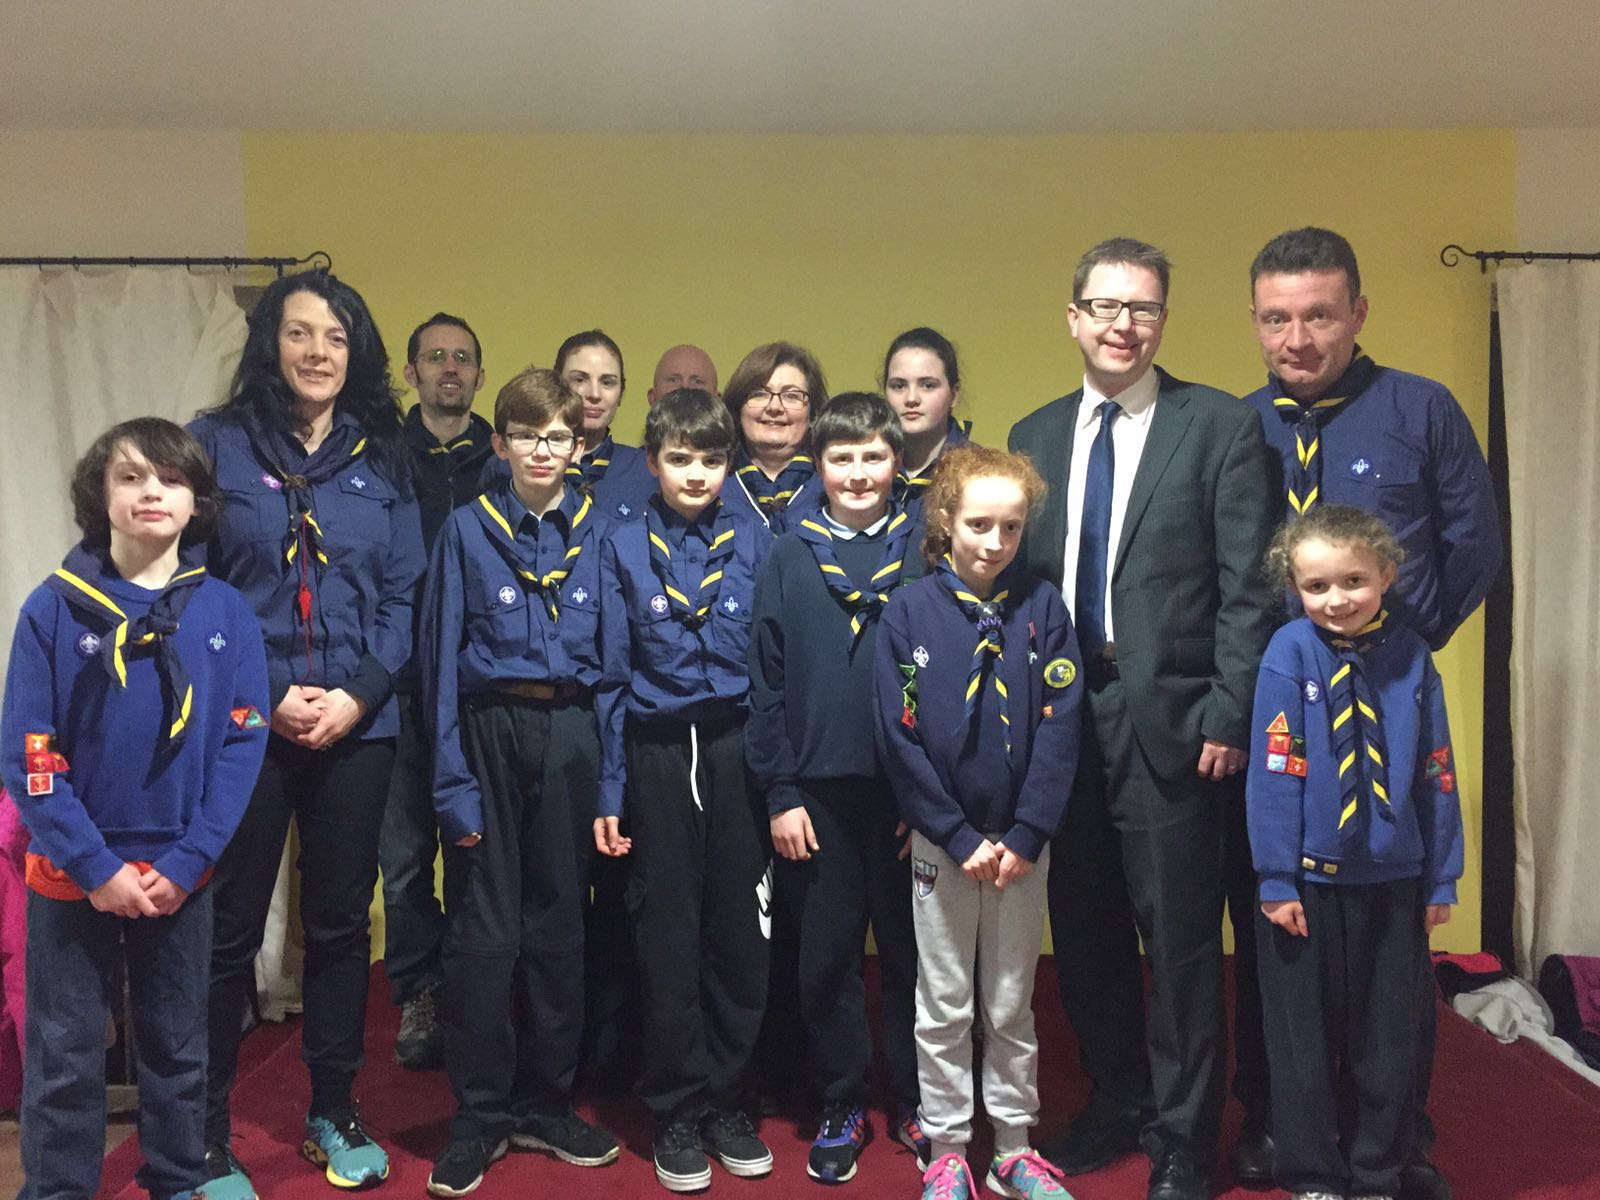 Together with members of the Kill scouts group and their scout leader Clem Gavin.